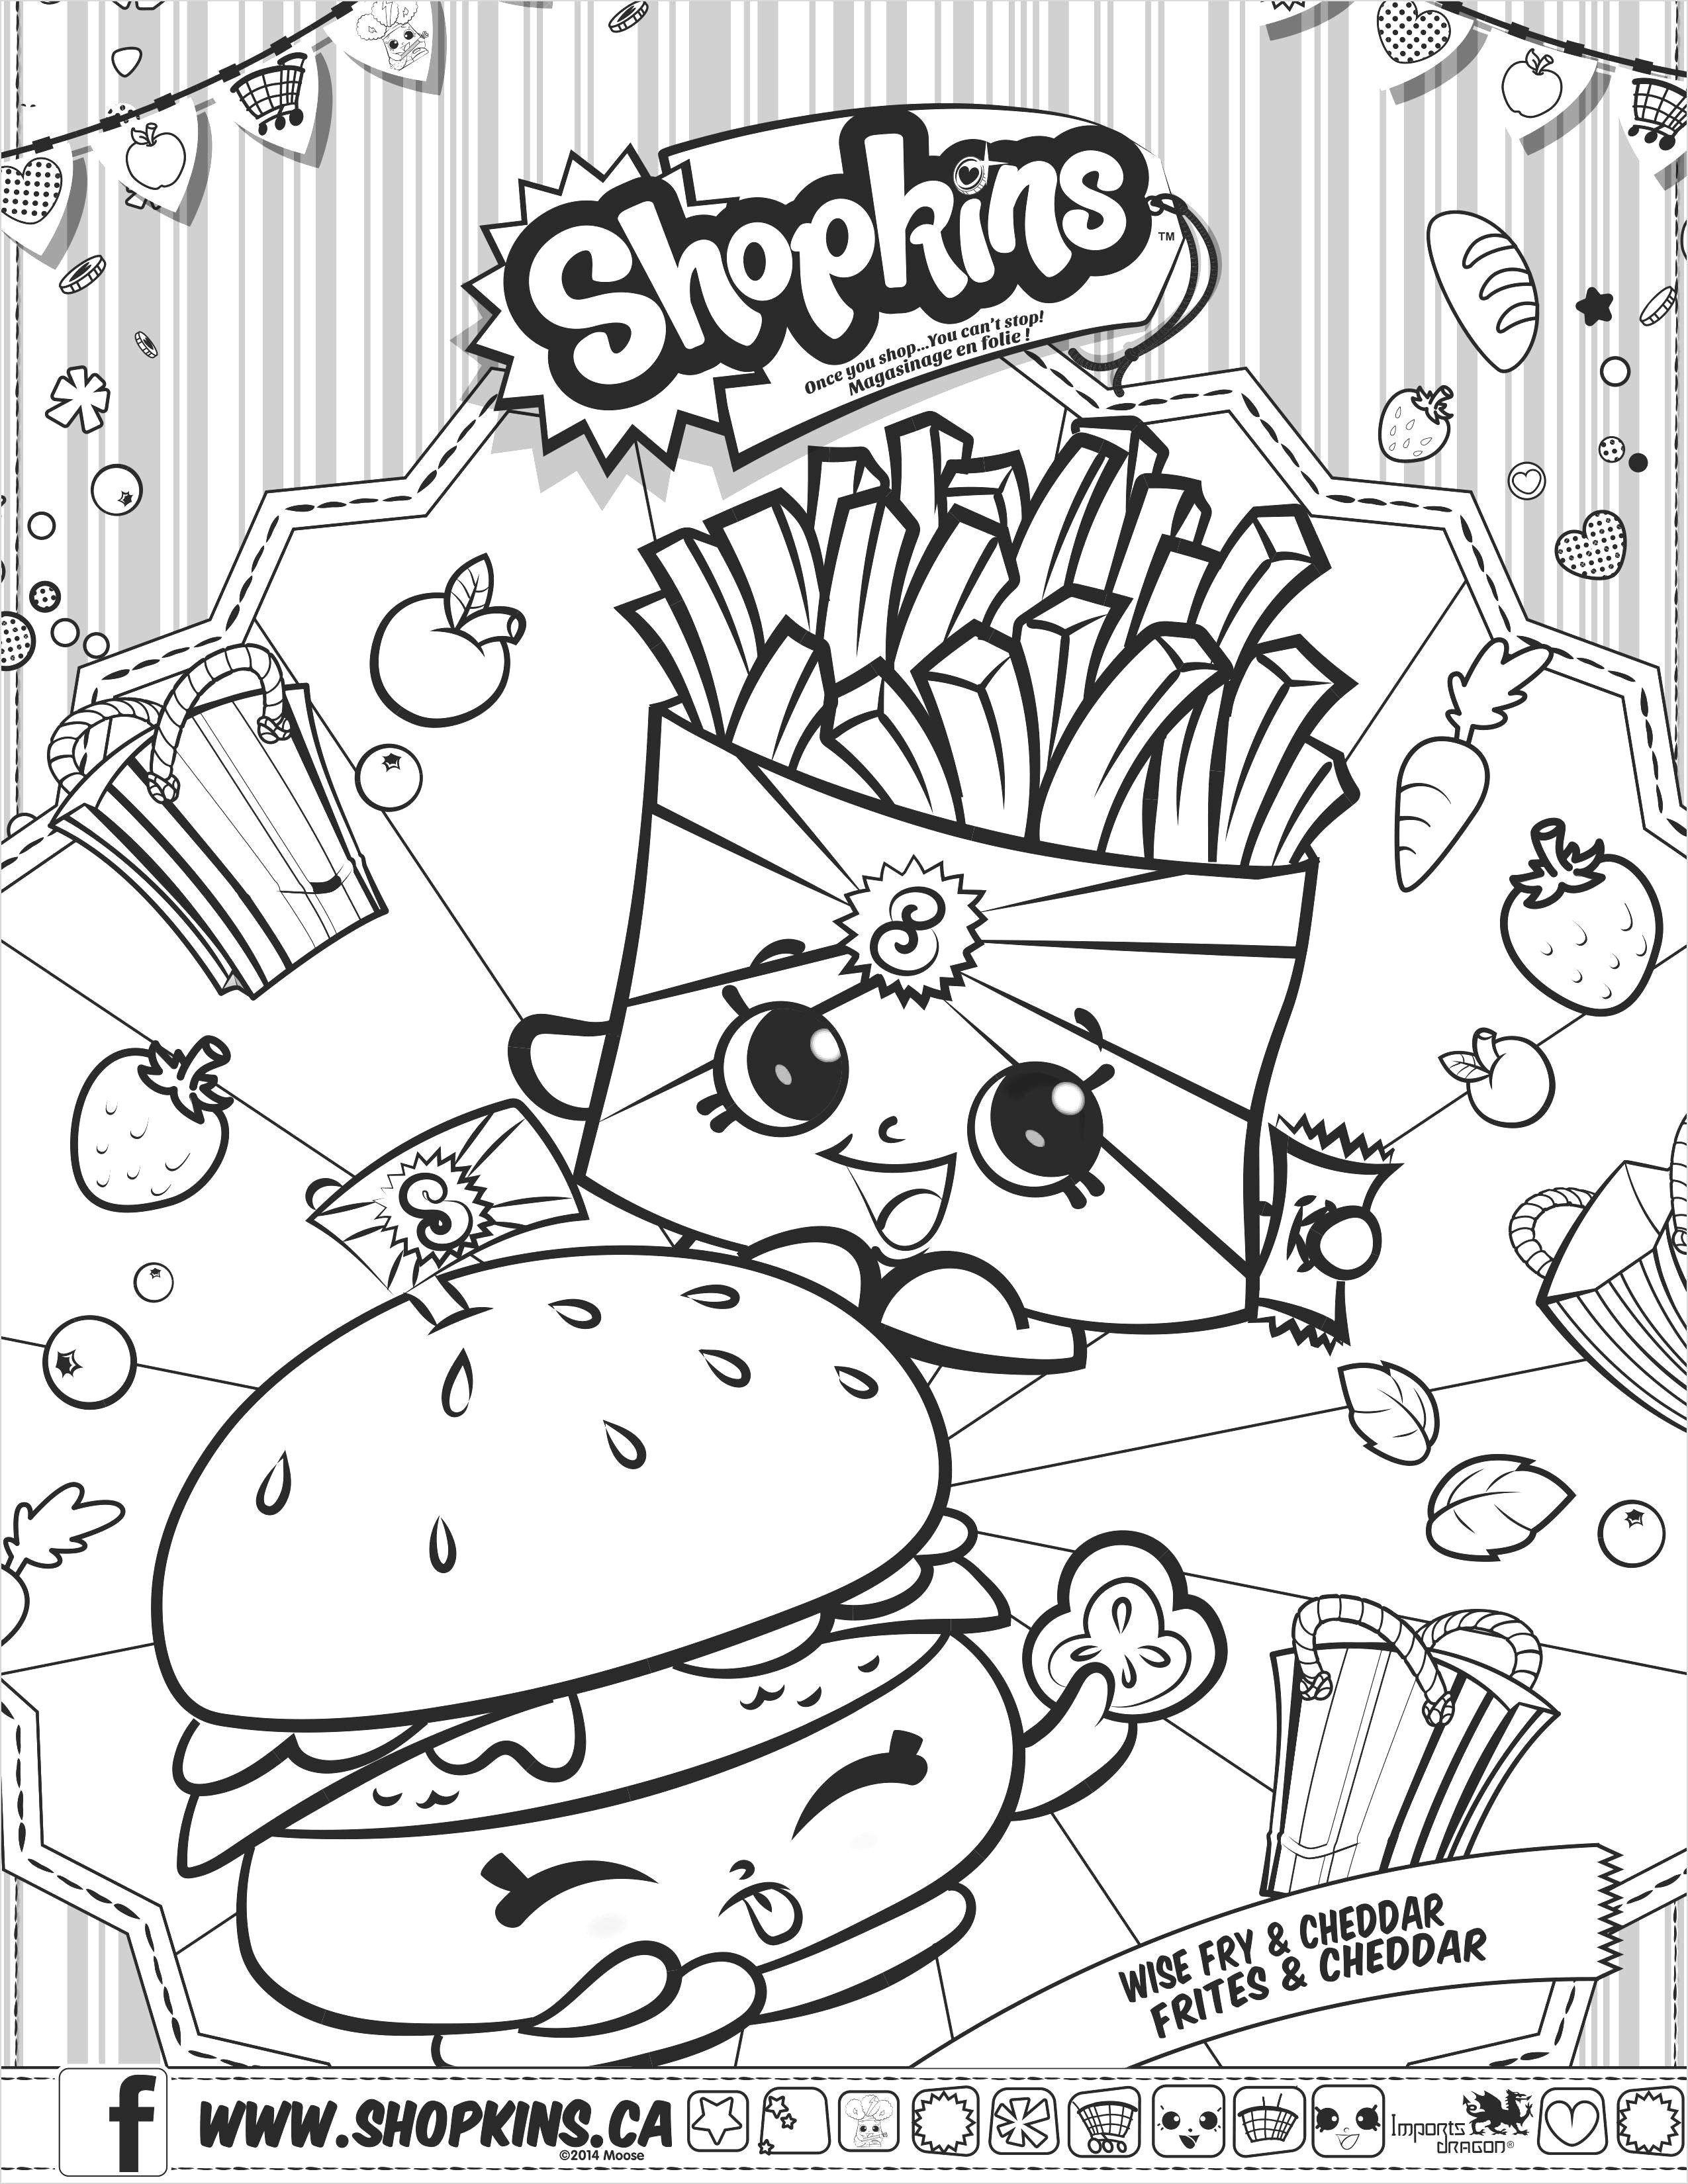 New Canned Food Coloring Pages Cleanty From Where Can I Find Food Coloring Source Valentine Coloring Pages Shopkin Coloring Pages Shopkins Colouring Pages